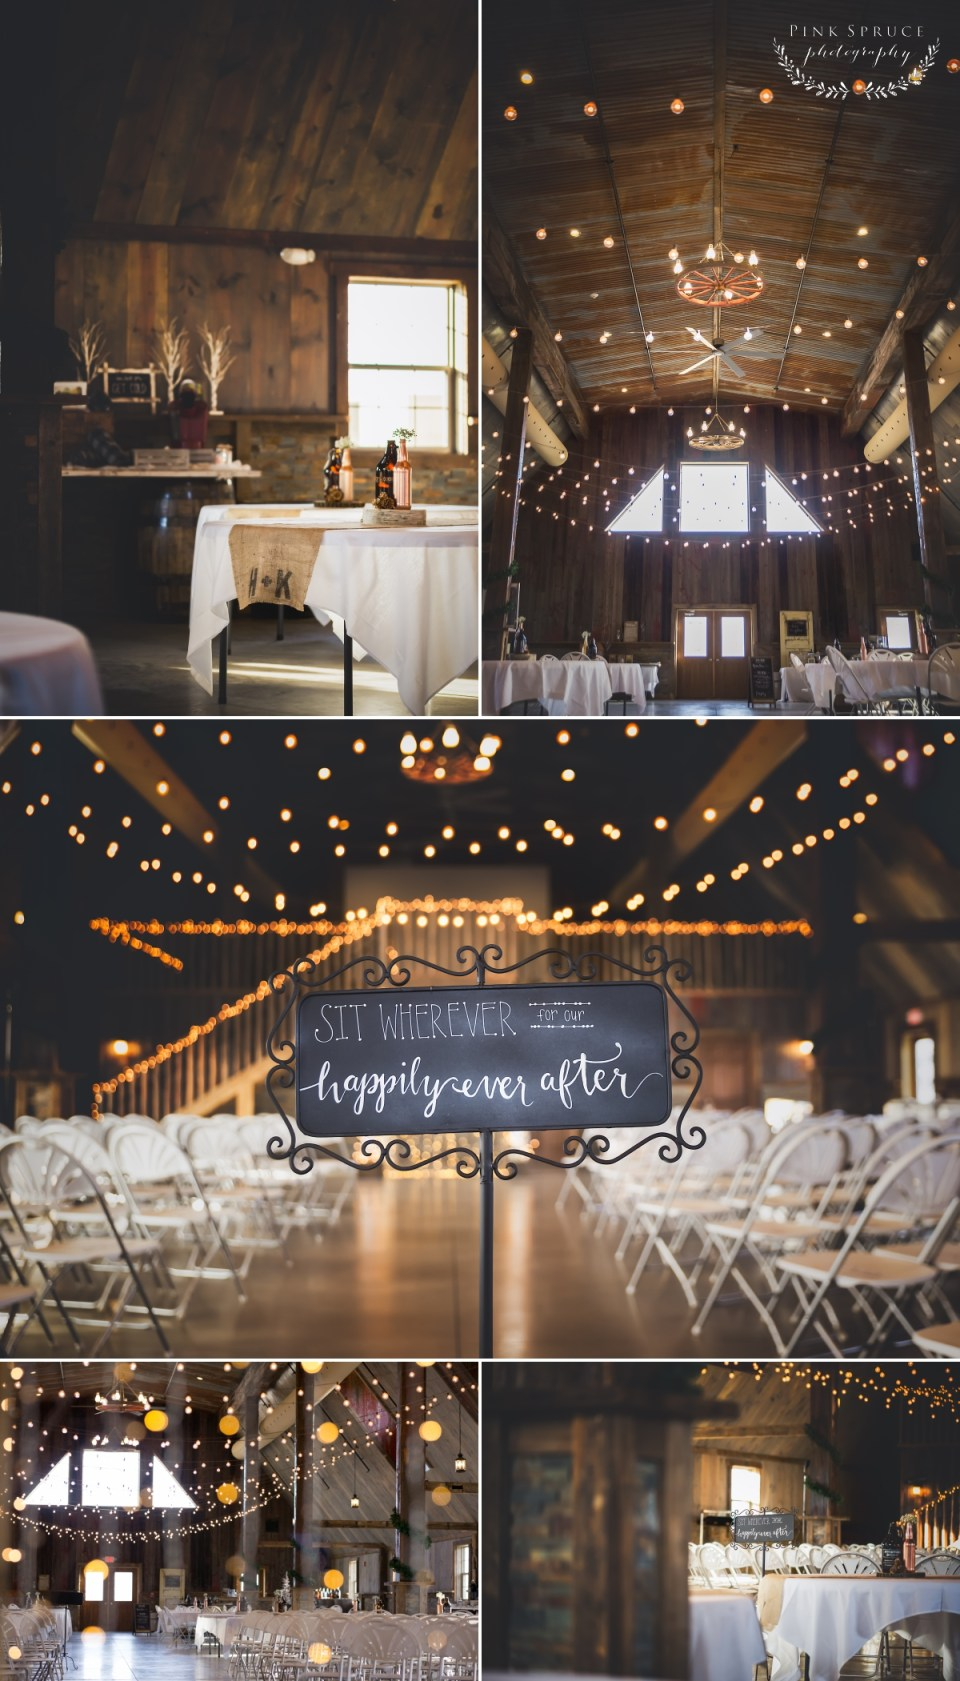 Rustic Winter Wedding at Pedretti's Party Barn, Viroqua, WI | Photography by: Pink Spruce Photography www.pinksprucephotography.com | Lesbian Wedding, Same Sex Wedding, Wisconsin Wedding